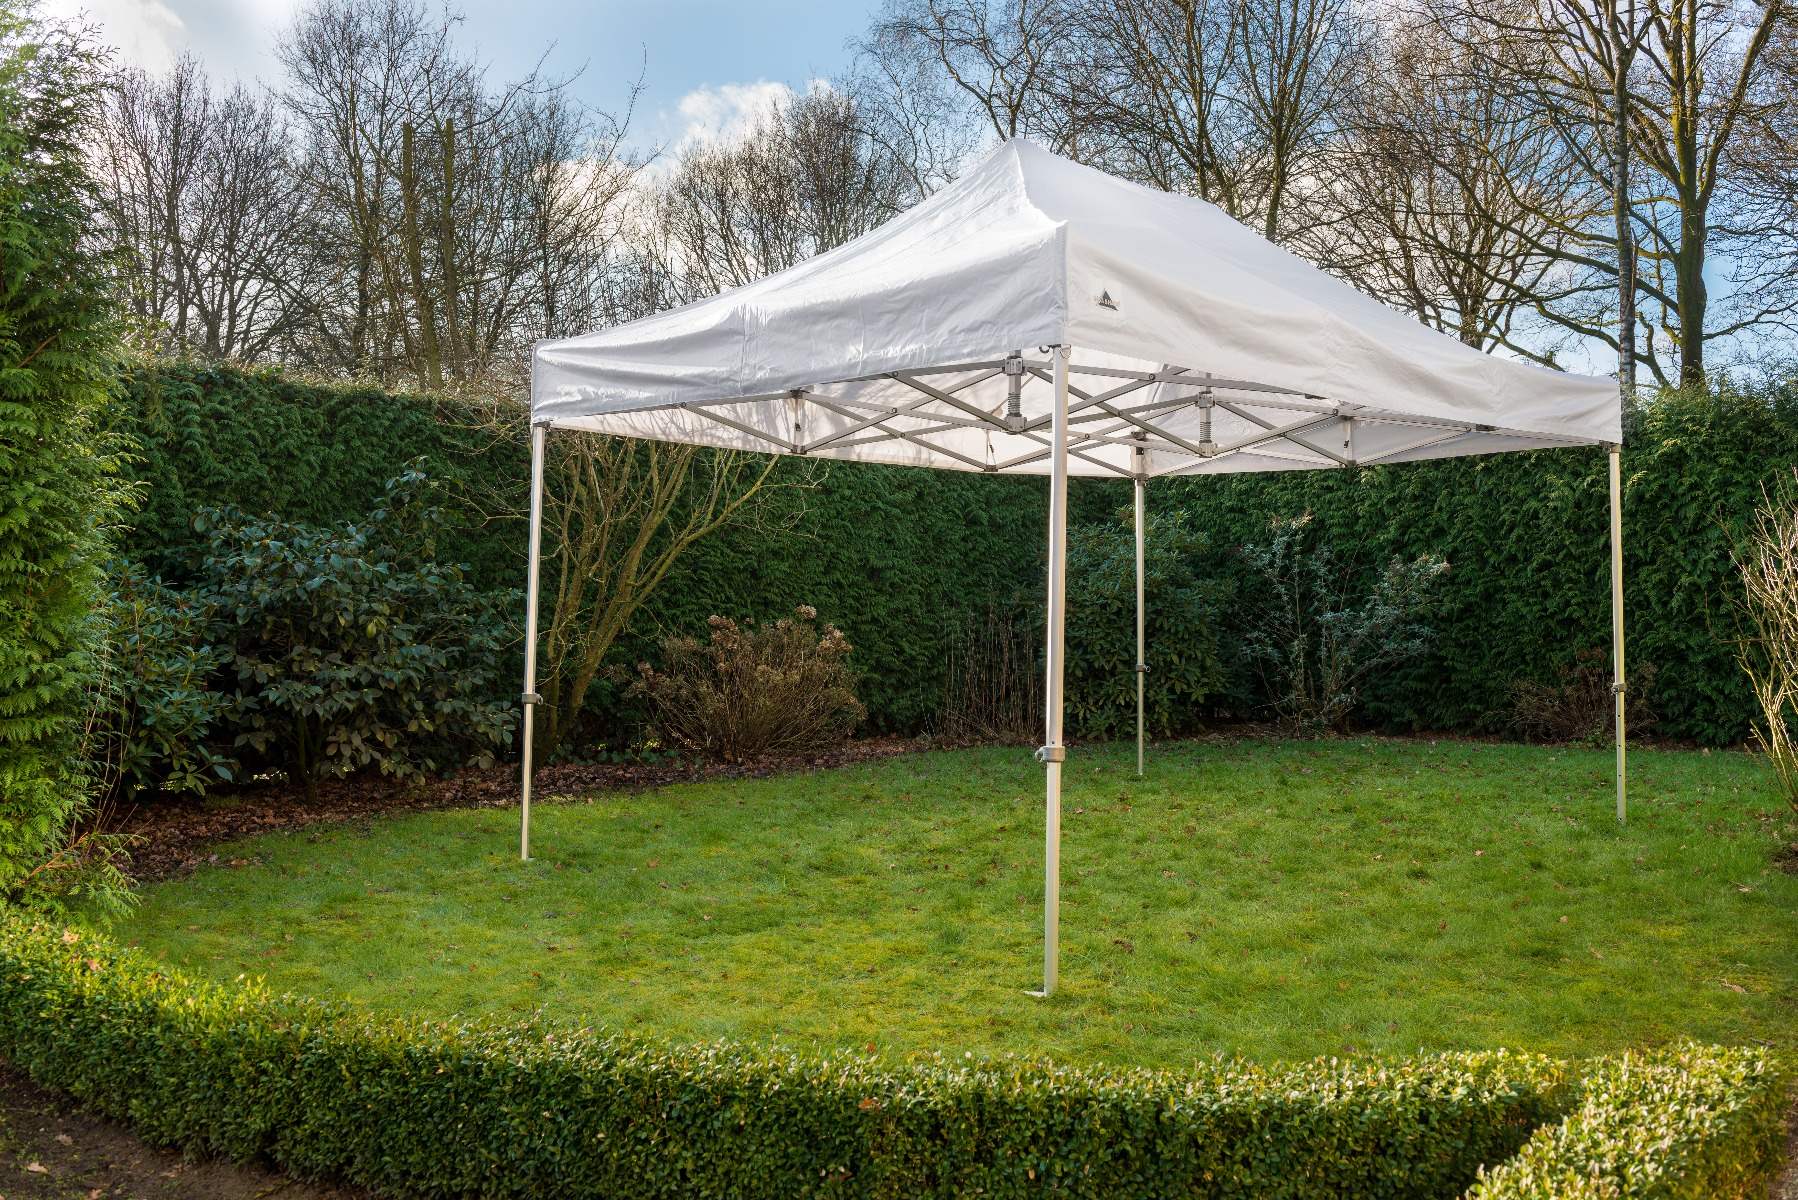 easy up partytent 3x6, Polyester of PVC